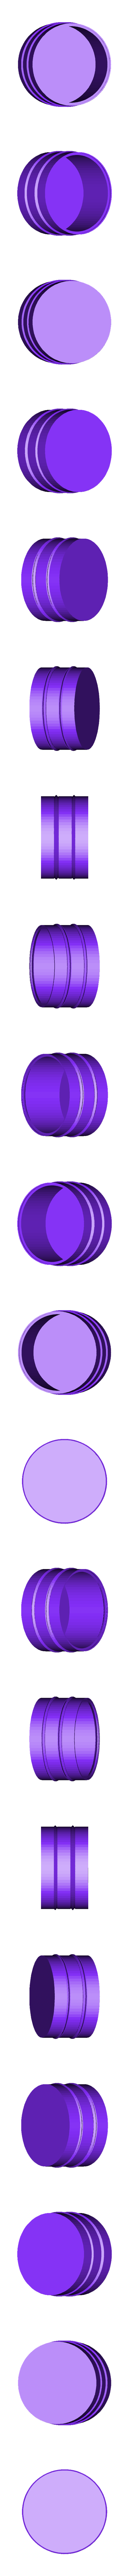 box_bottom.stl Download free STL file Tic Tac Barrel Game with case (Morpion barril with a box) • Design to 3D print, Locorico